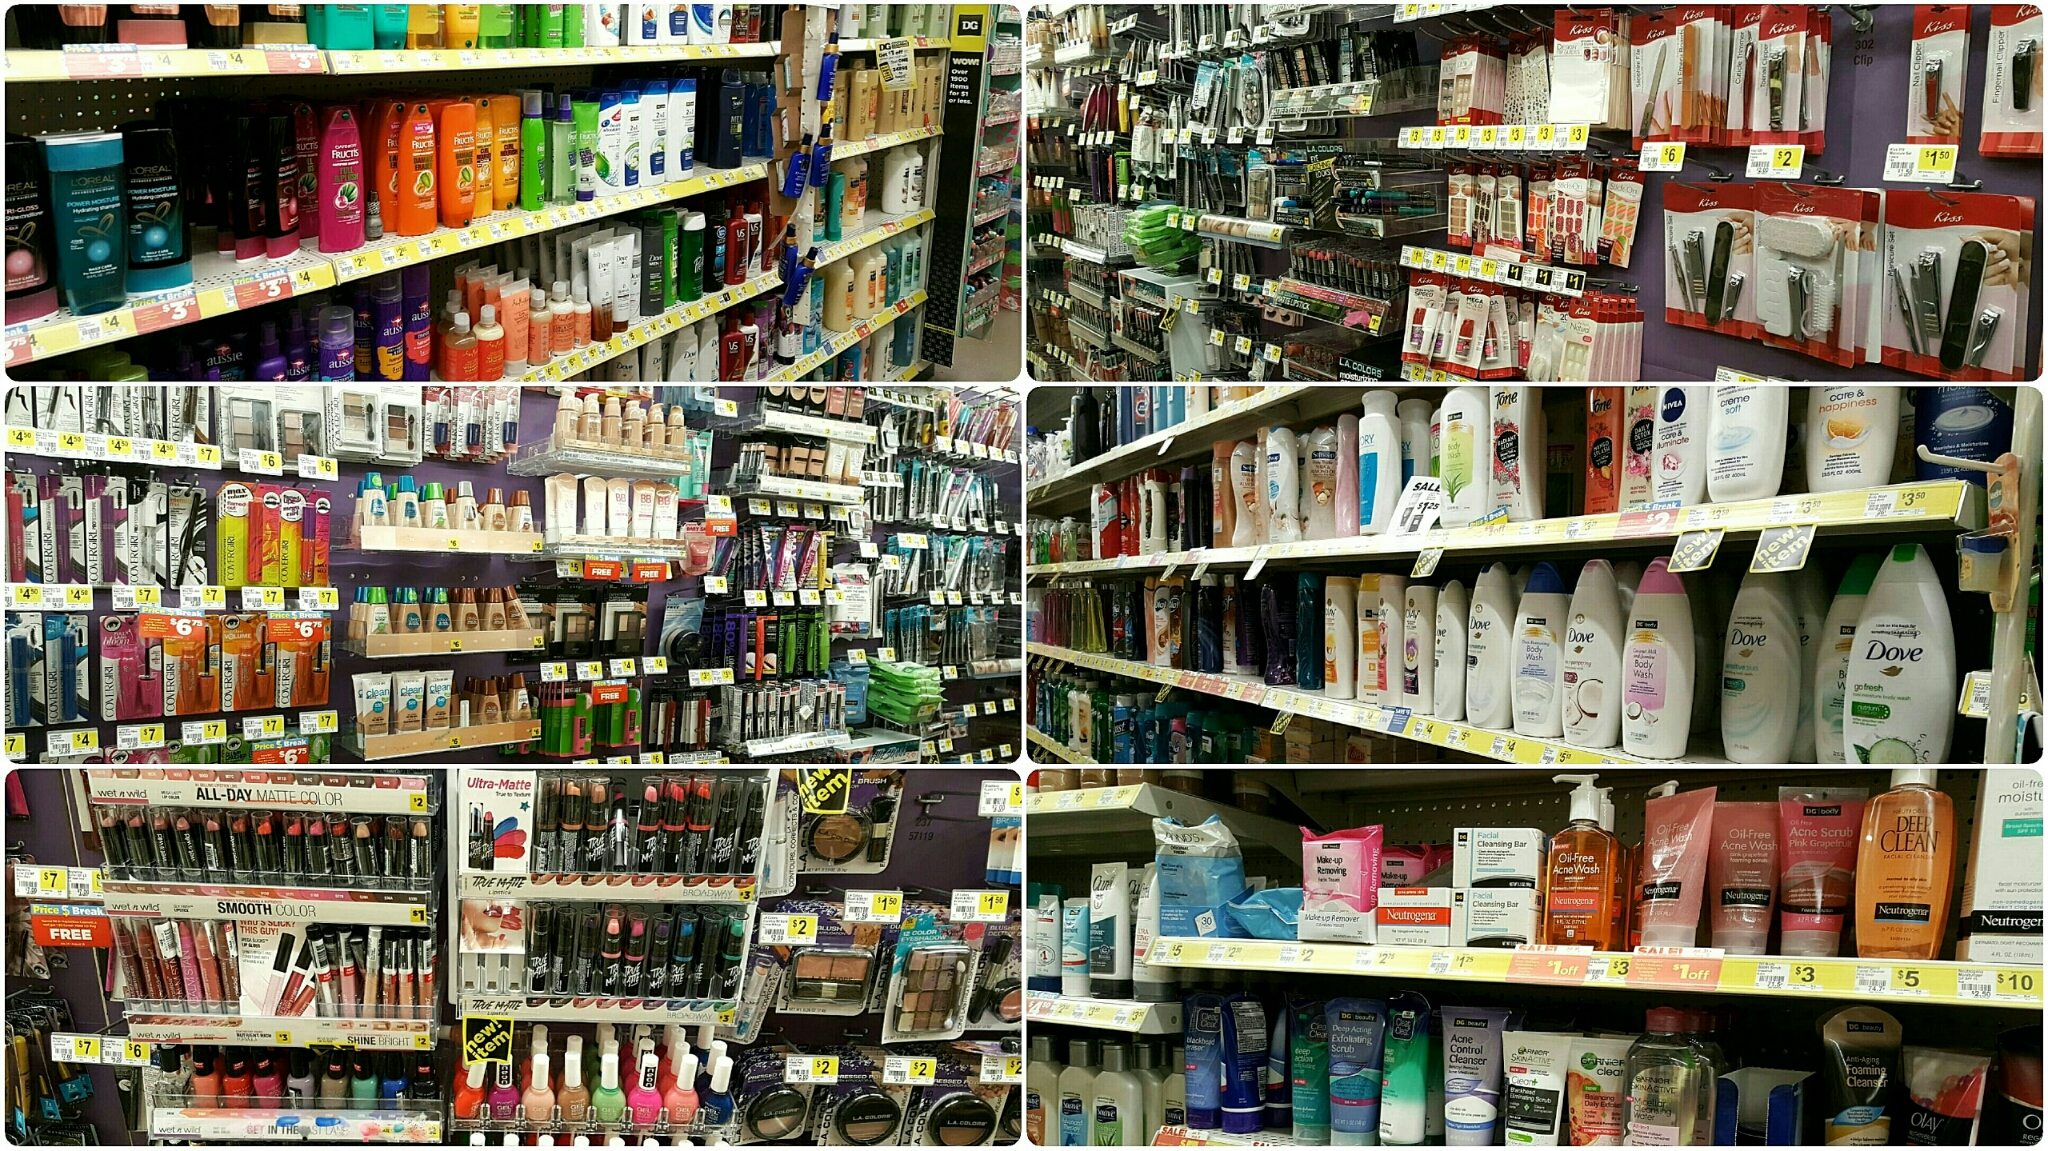 Surprising Beauty Finds At Dollar General - photo#30